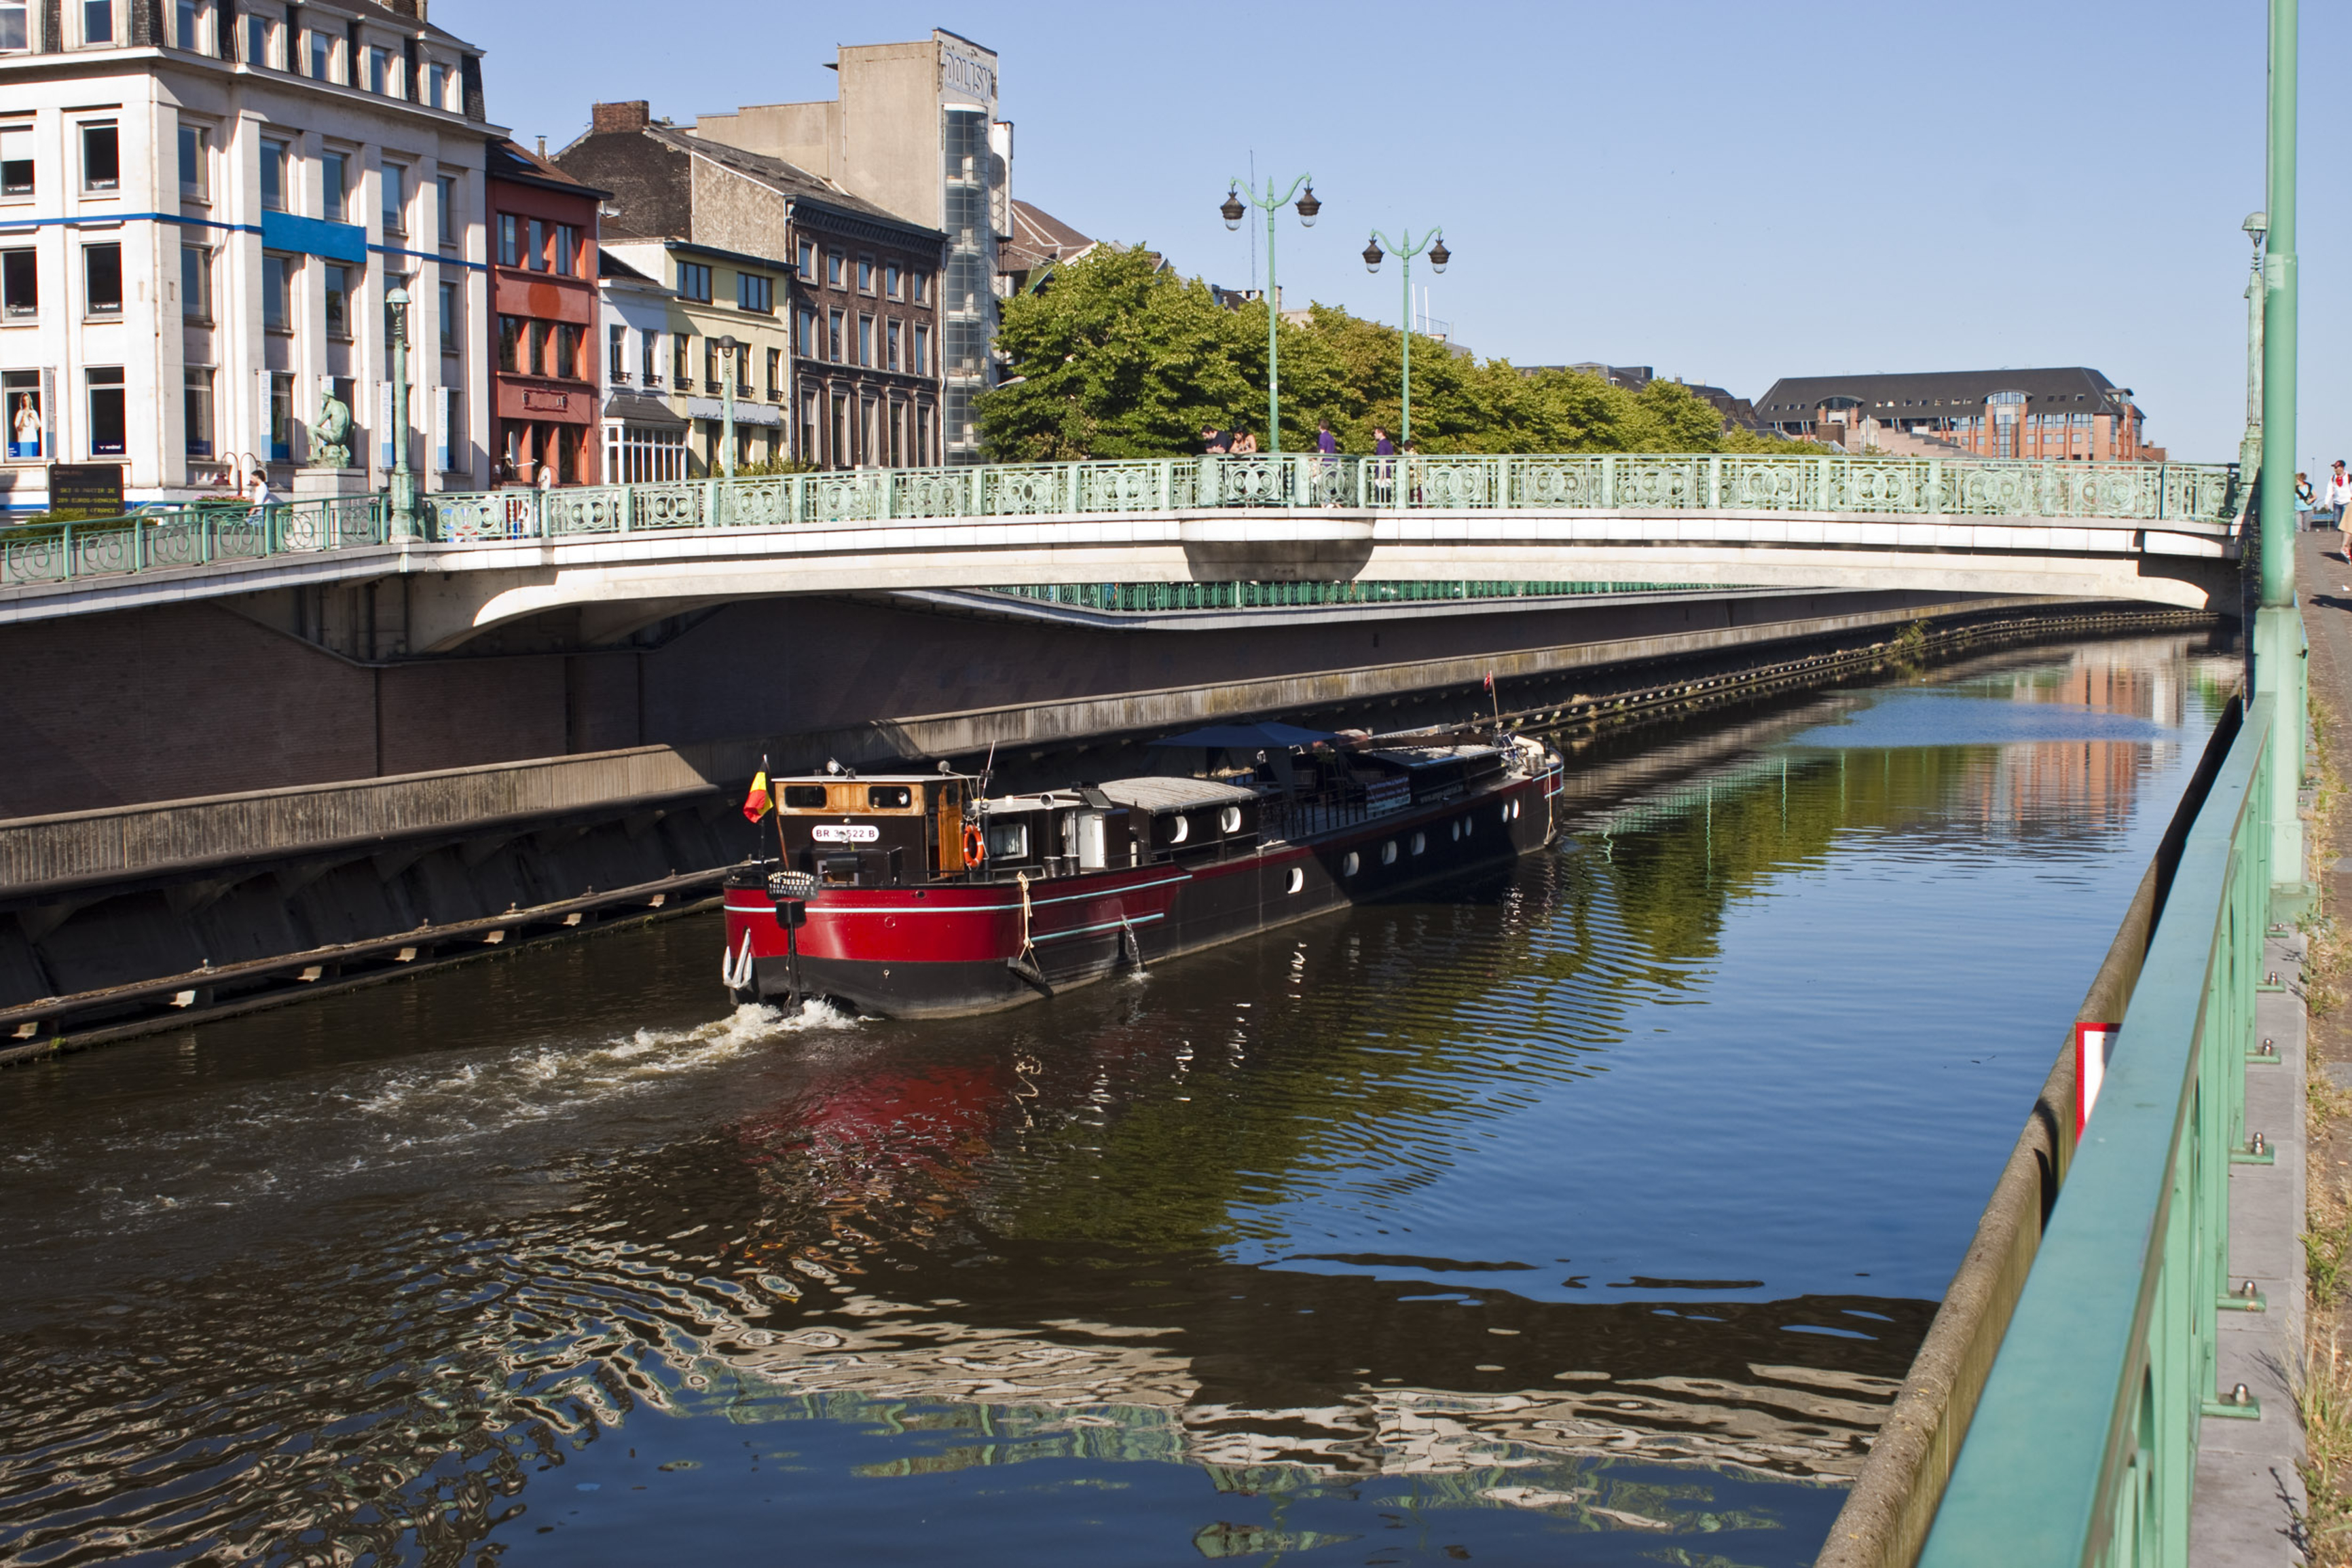 Charleroi-Brussels canal